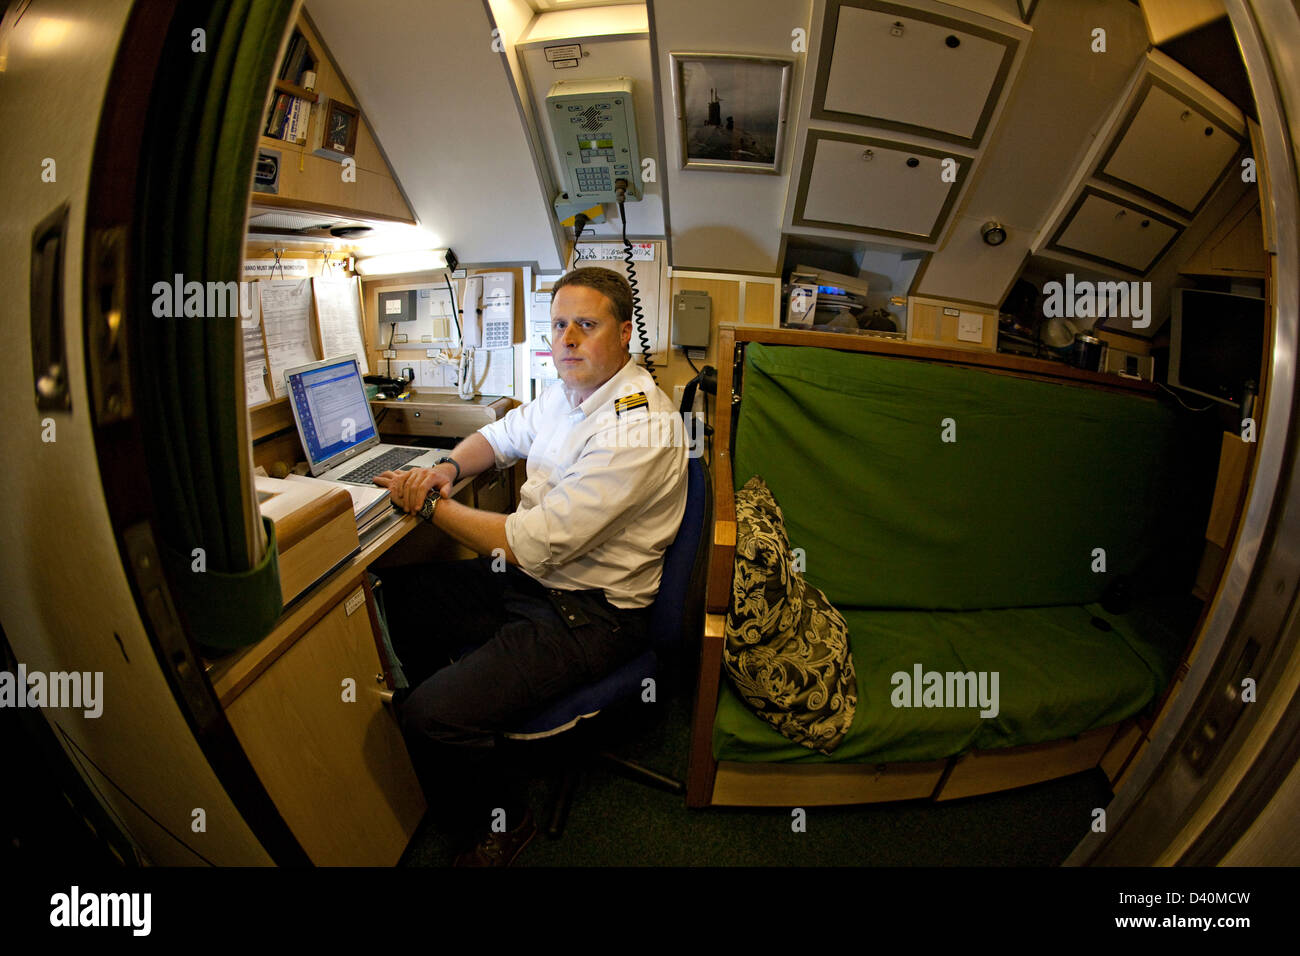 Hms Talent Stock Photos Amp Hms Talent Stock Images Alamy